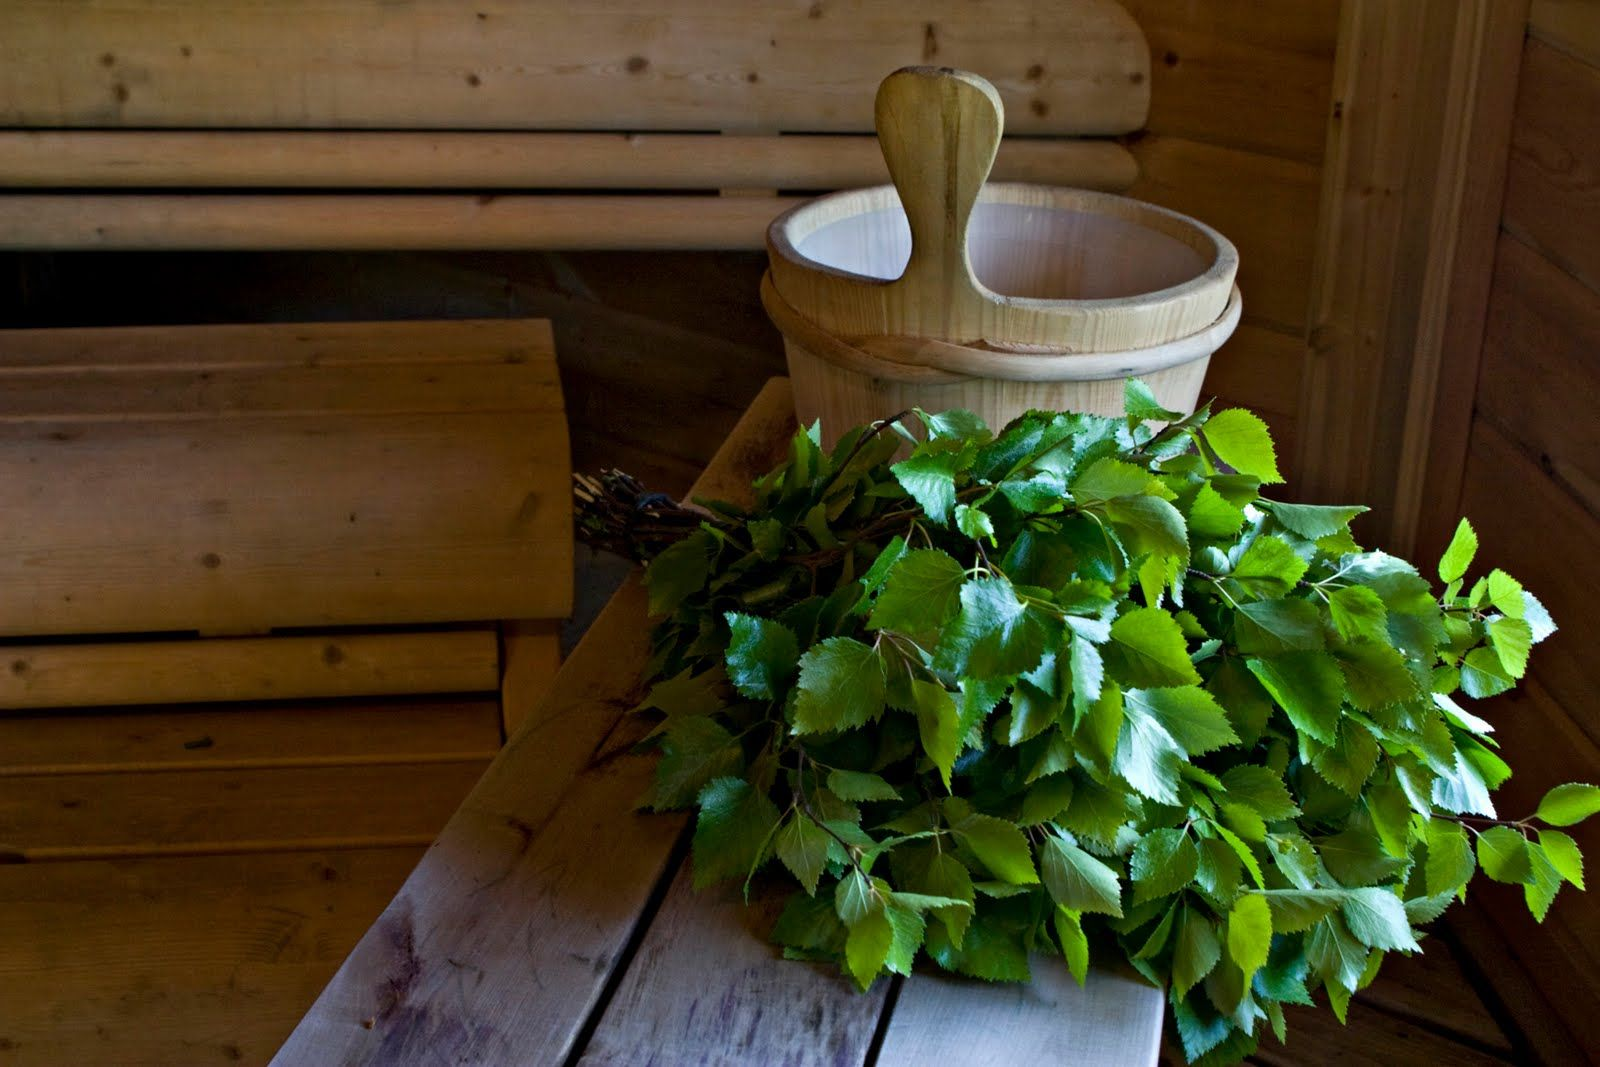 Finnish sauna with the birch  branch bath whisk. Used to increase circulation to perspire and cleanse the body followed by a soapy basin bath and rinse. Best feeling in the world.